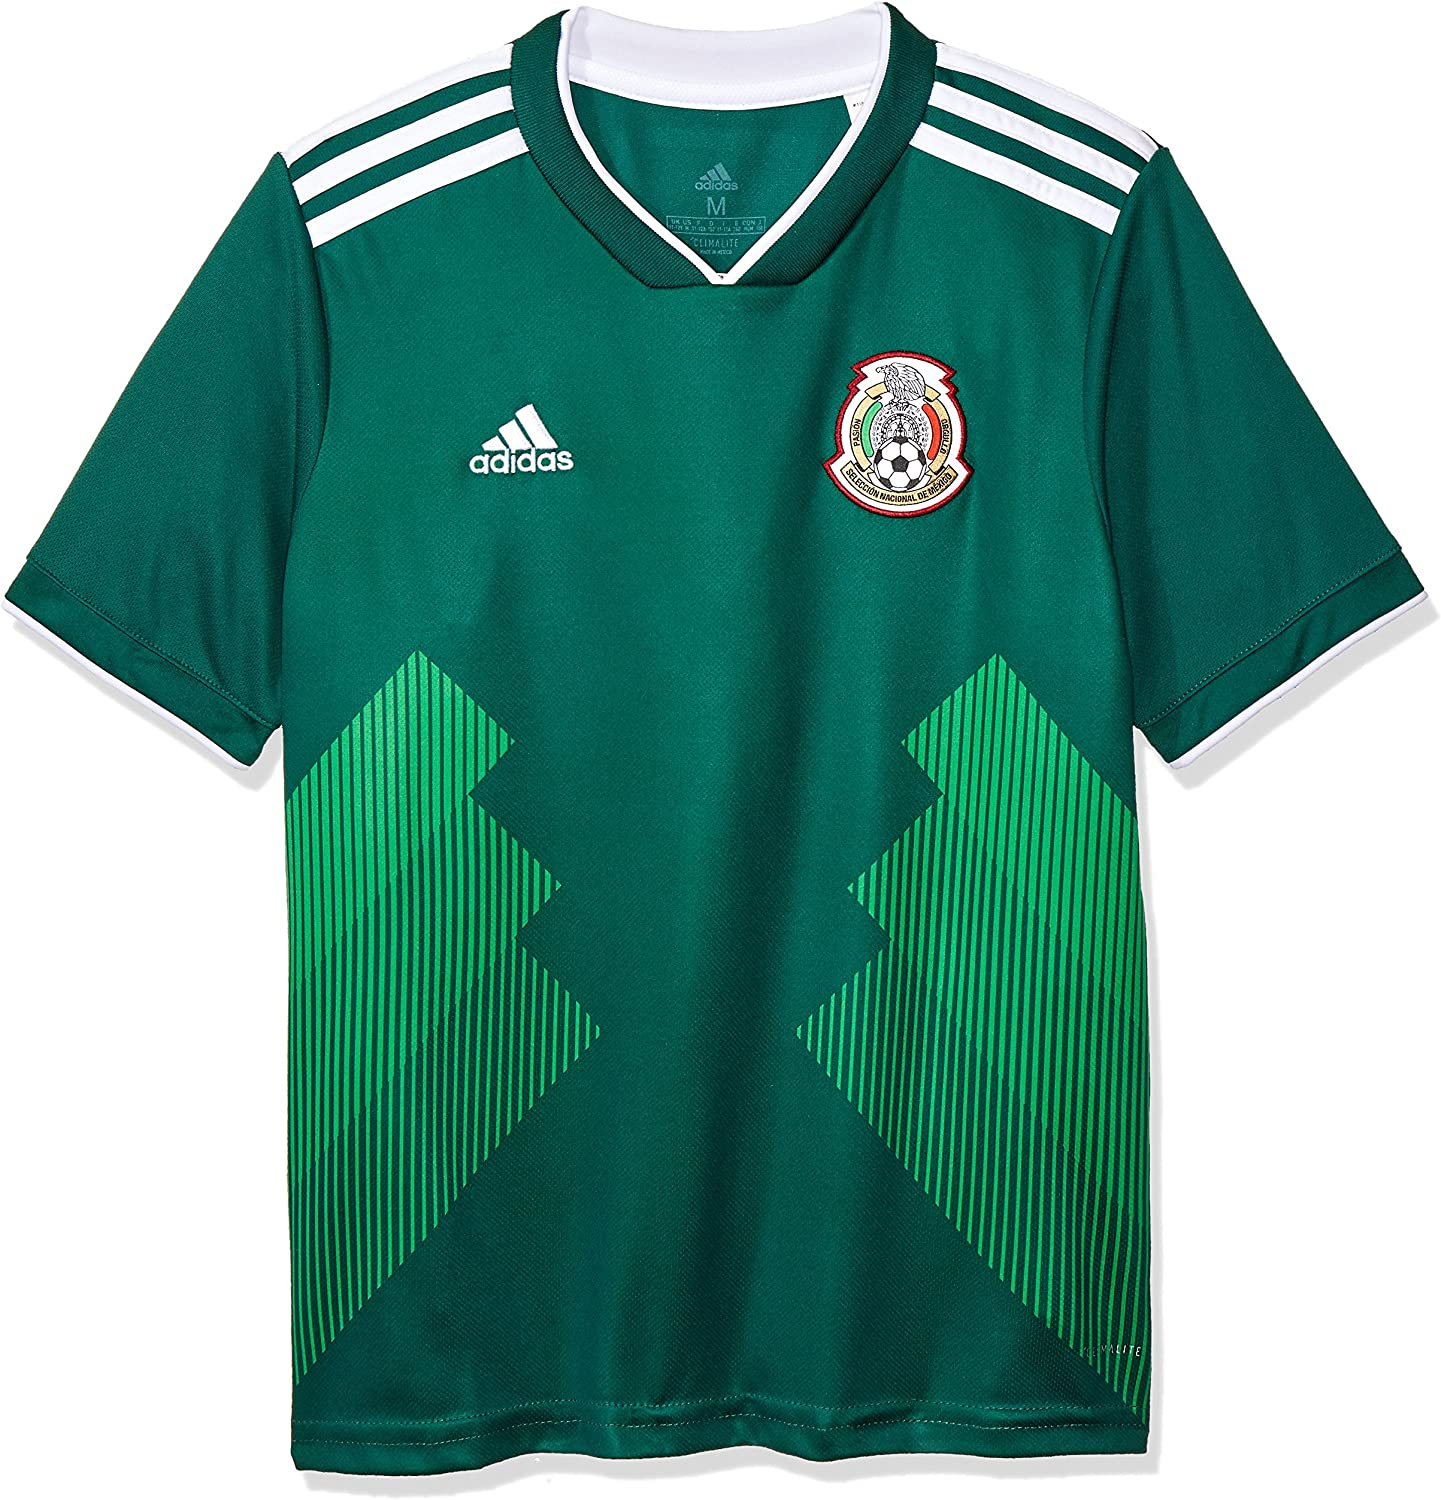 adidas 2018-2019 Mexico Home Football Soccer T-Shirt Jersey (Kids)